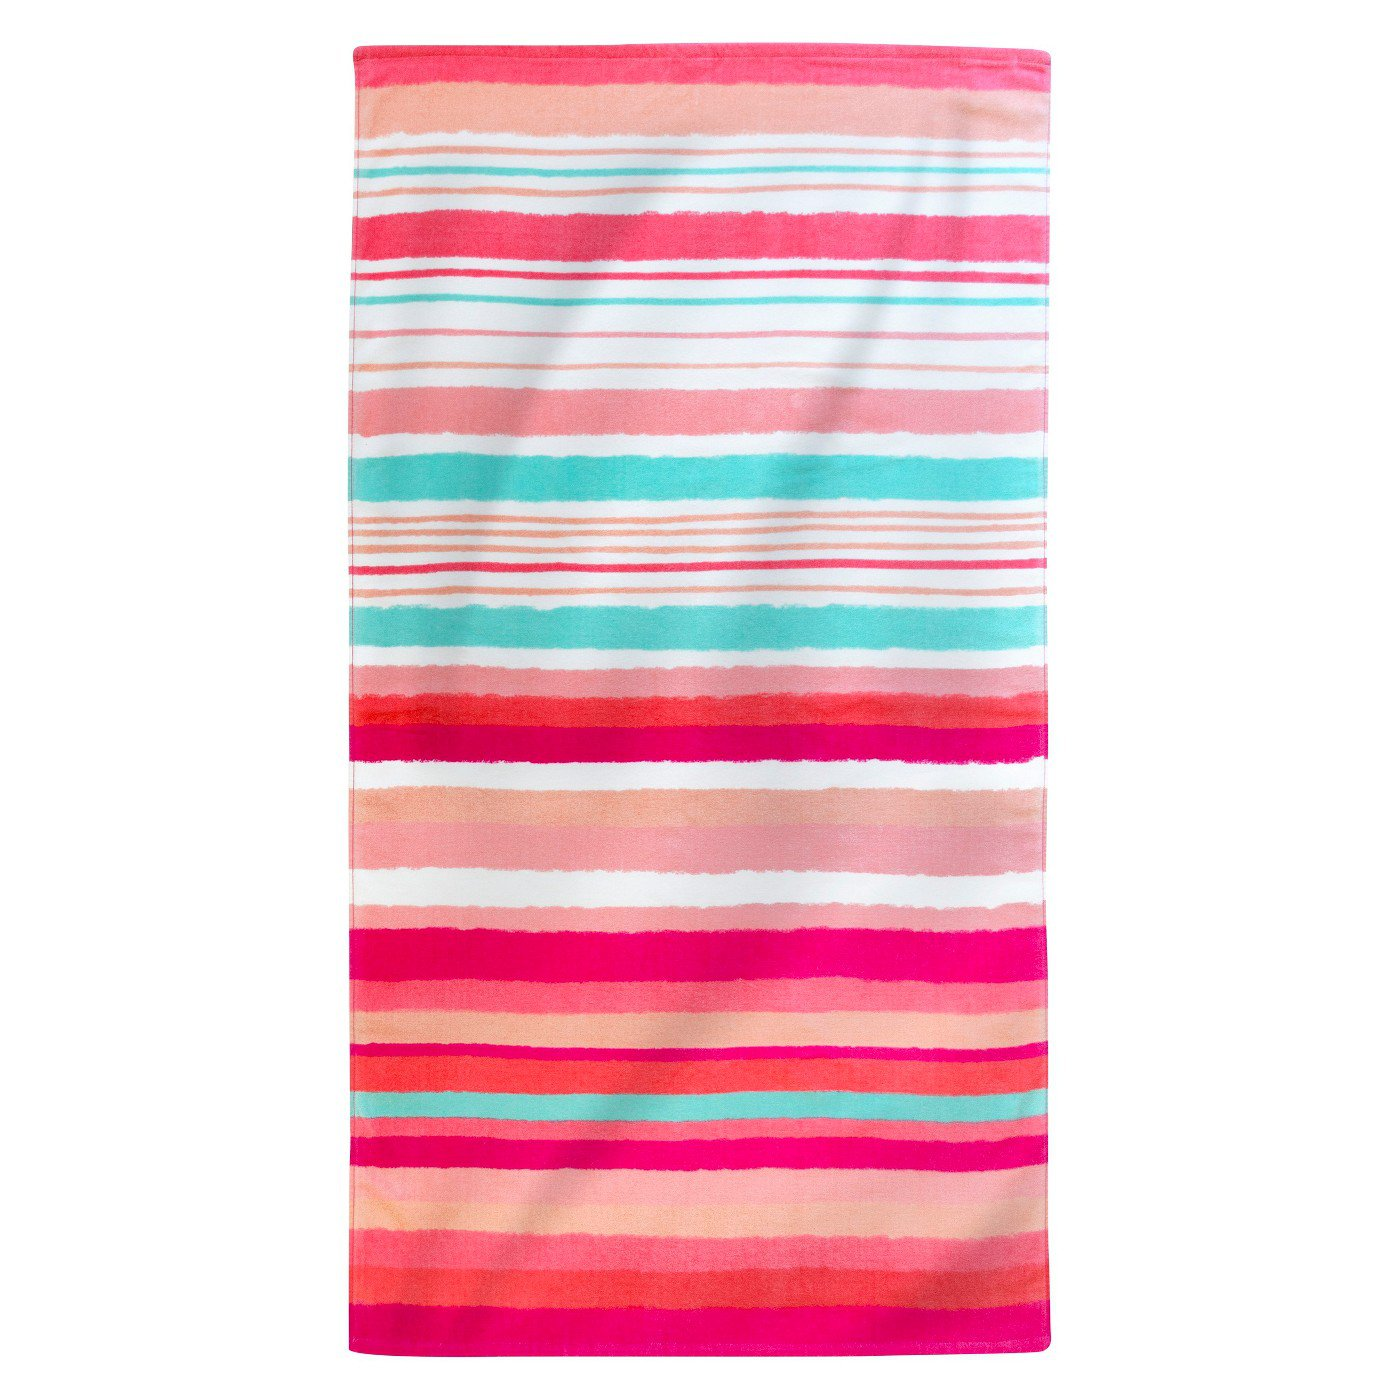 Printed Hand Drawn Stripes Beach Towel Coral : Target